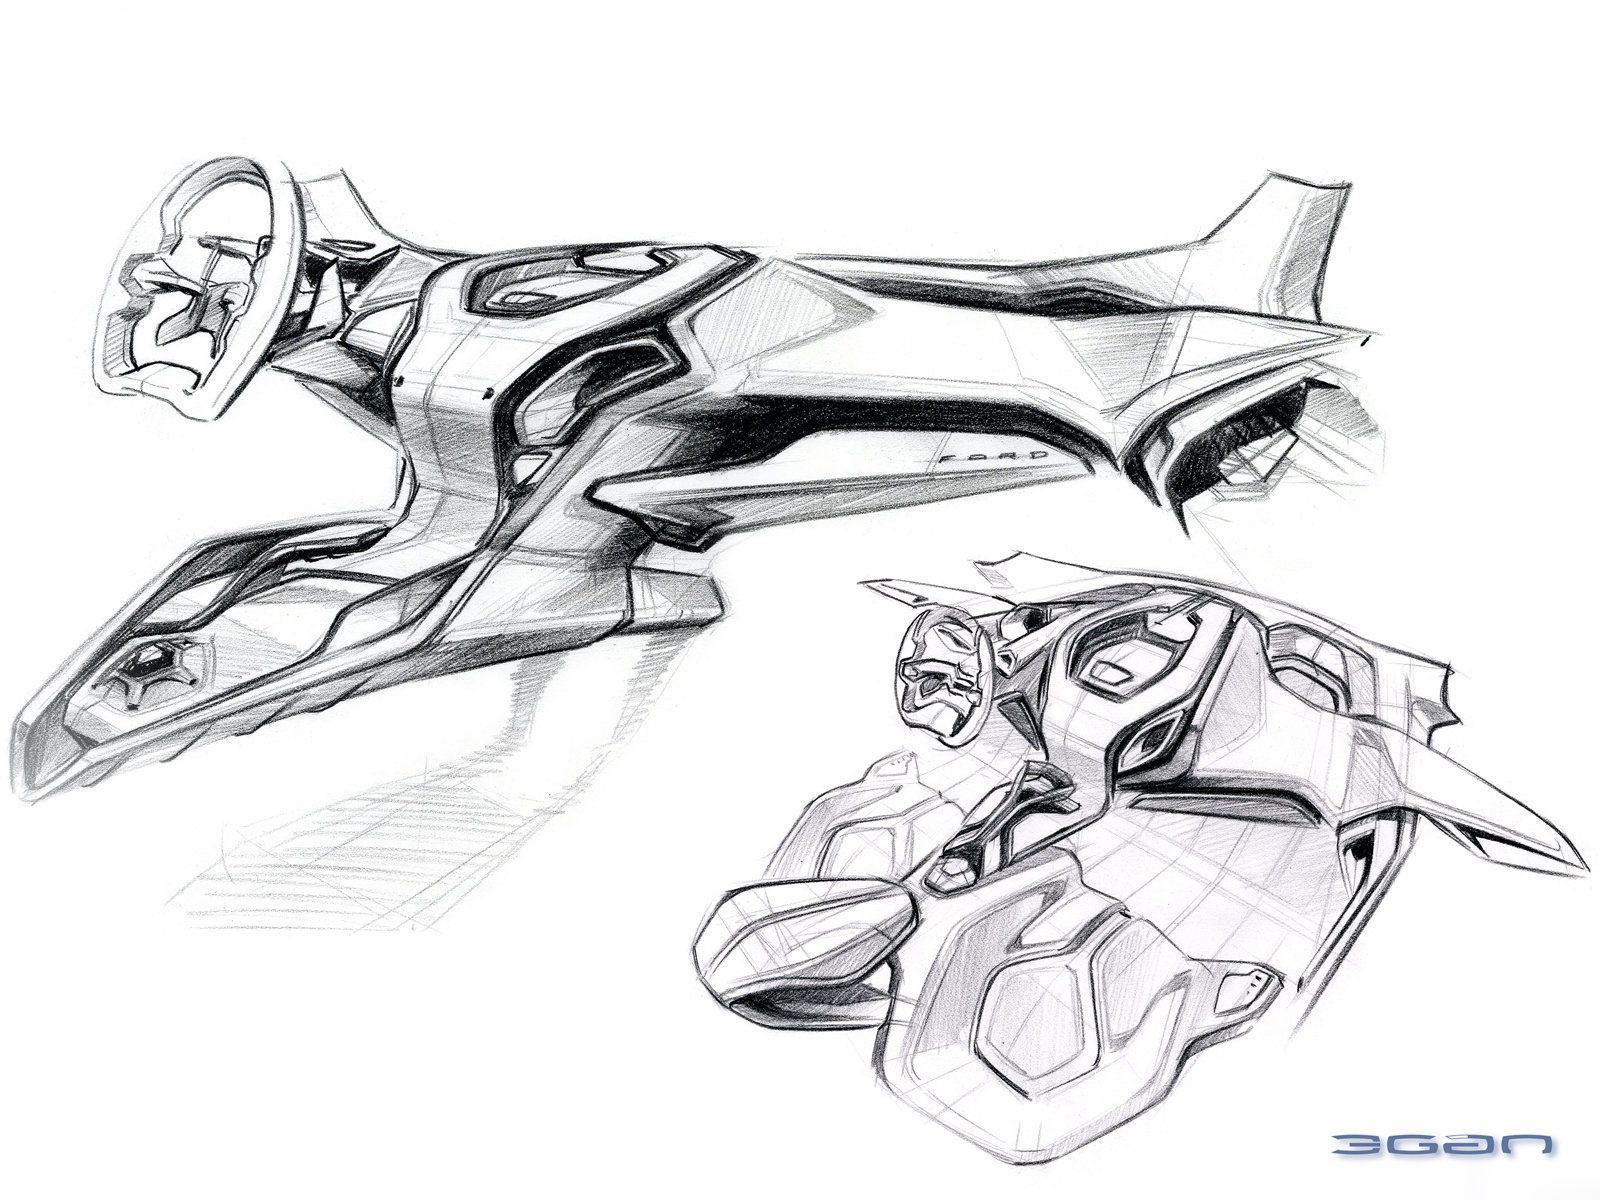 Ford Iosis MAX Concept Interior Design Sketch